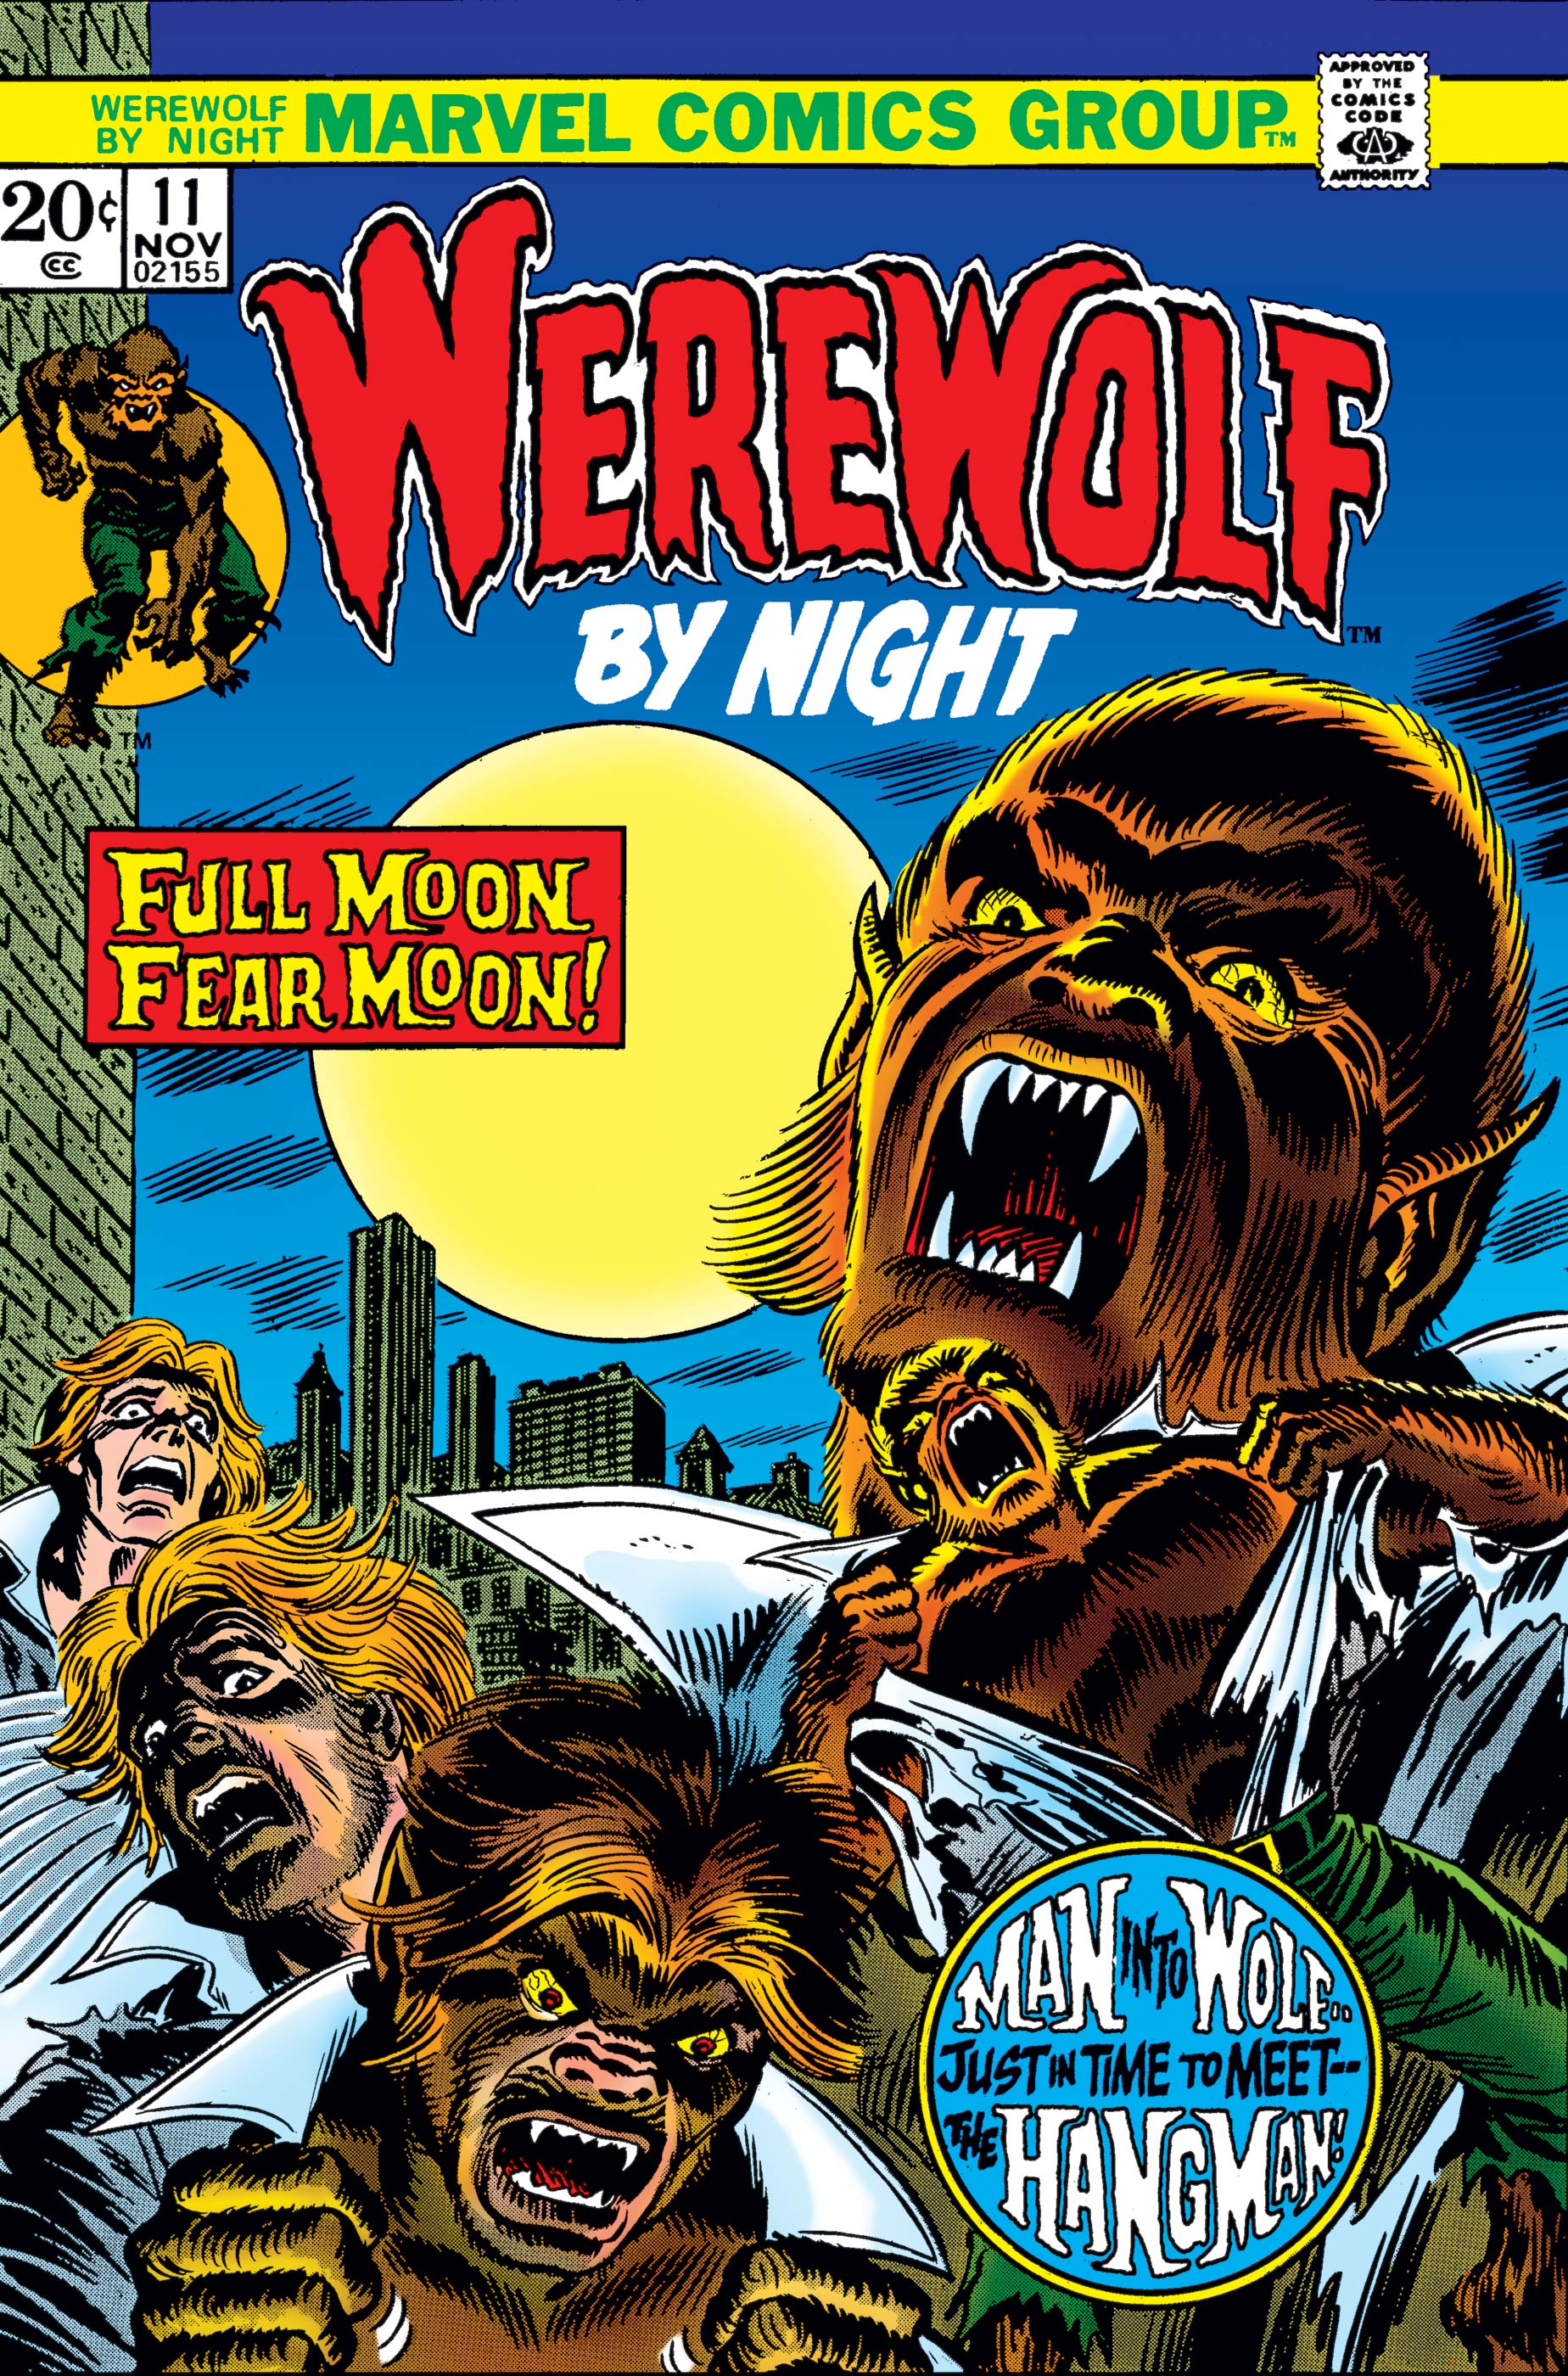 Werewolf By Night (1972) #11